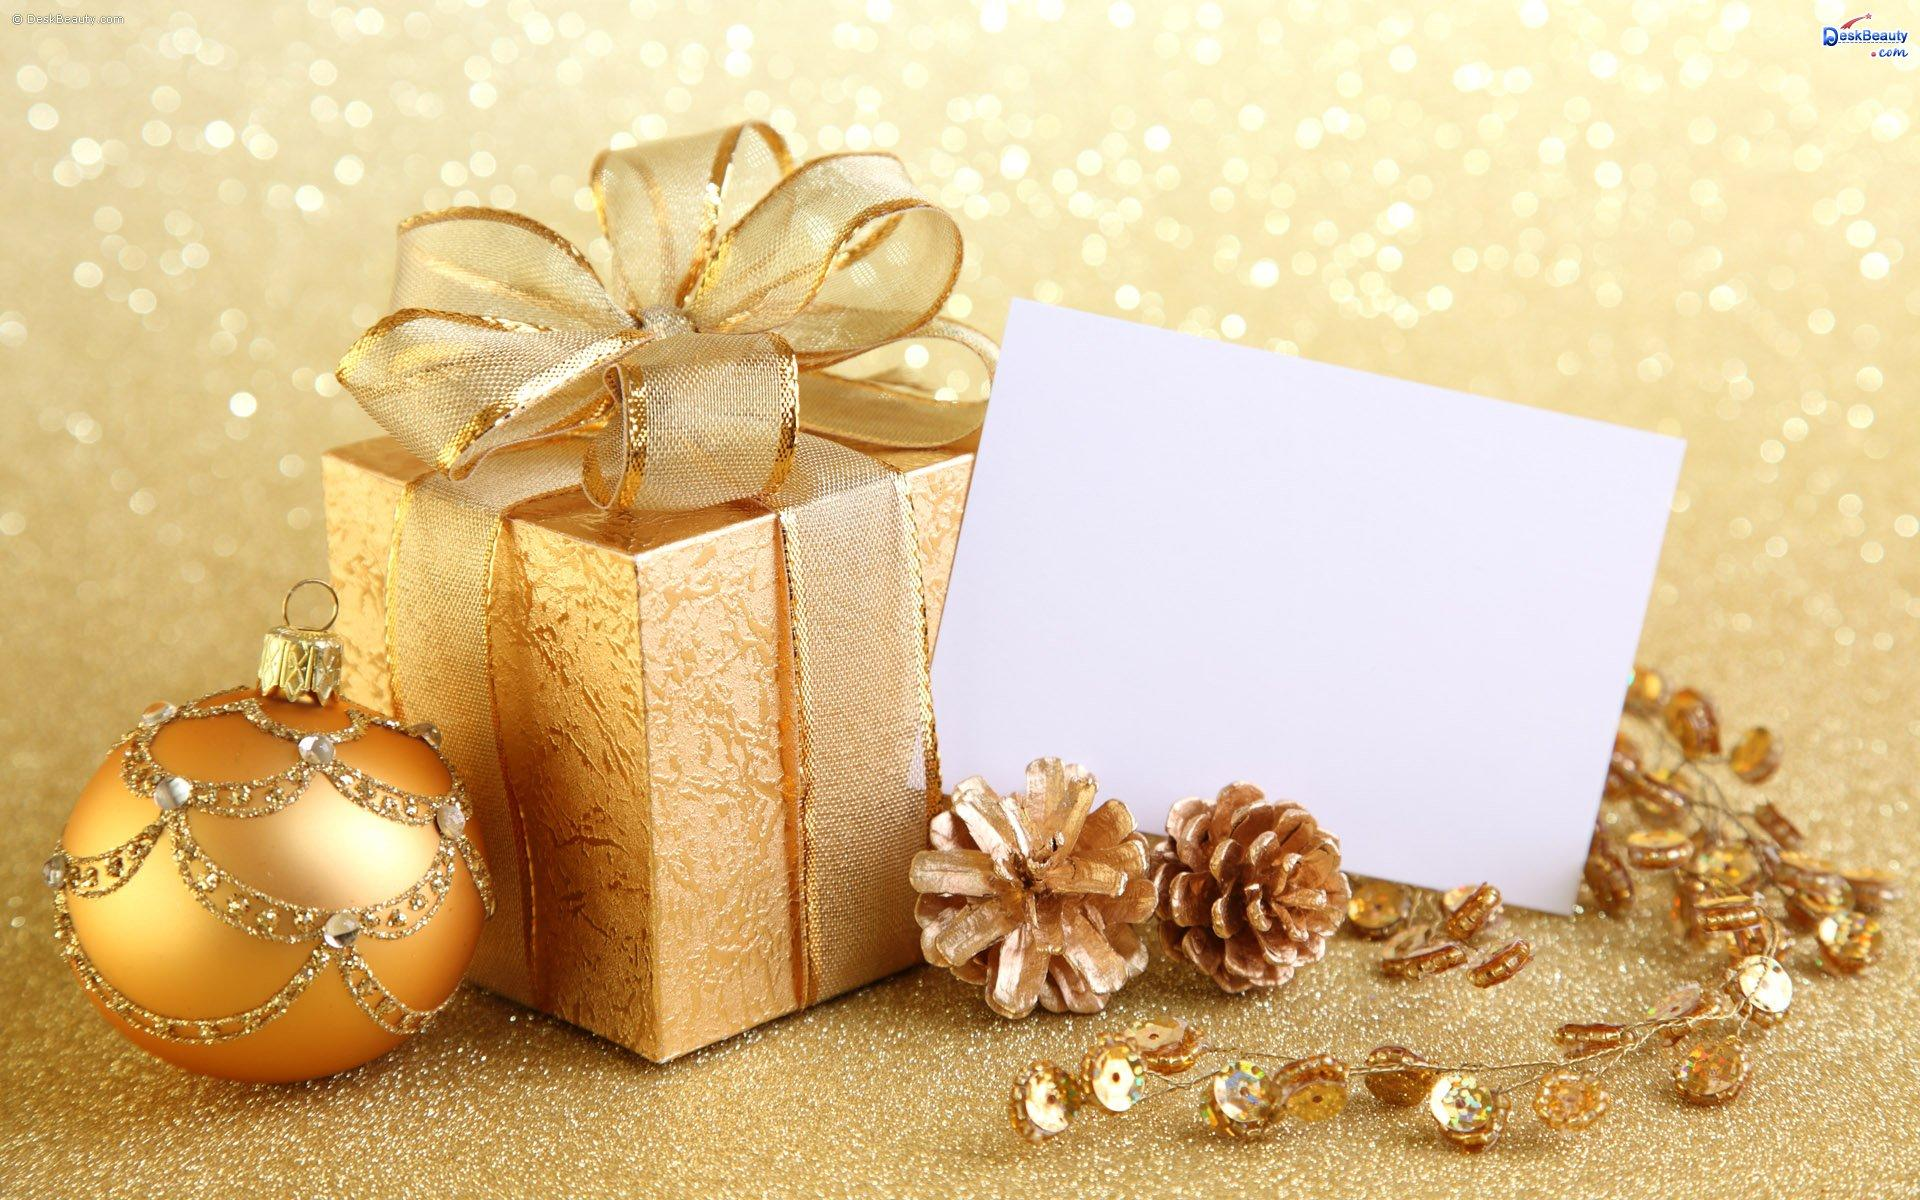 Christmas Card And Gift Wallpaper 1920x1200